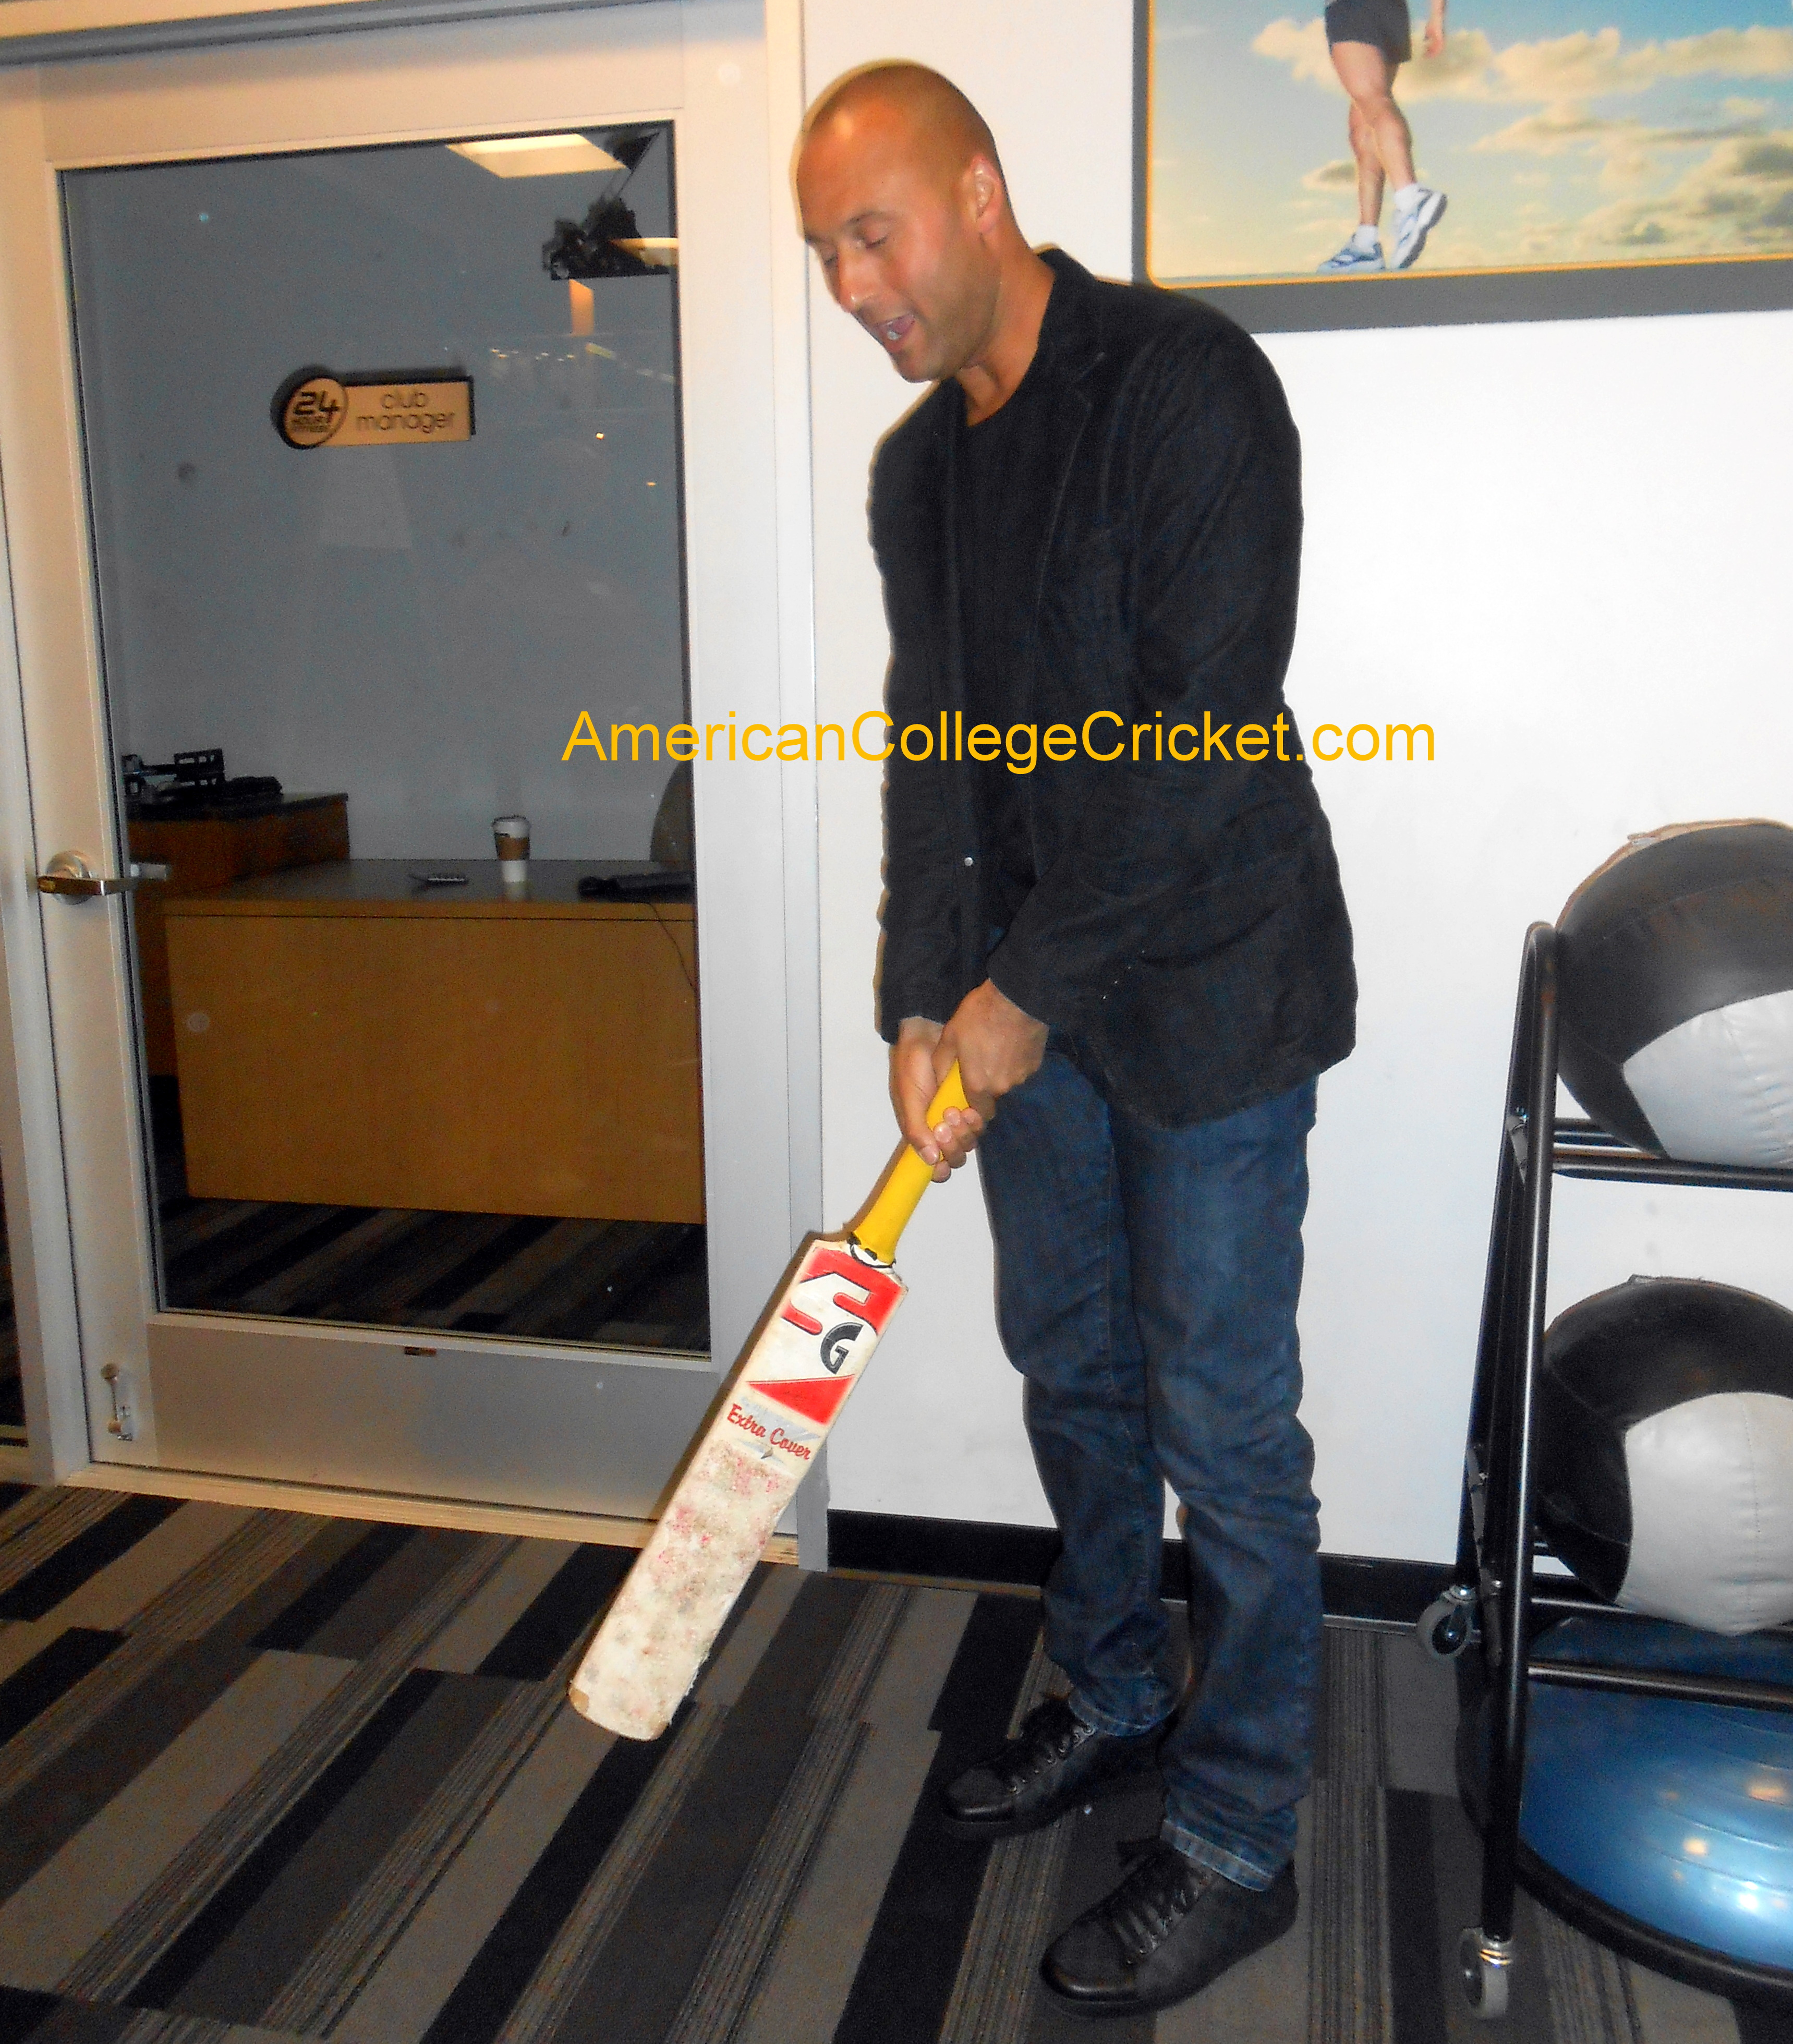 NY Yankees Derek Jeter's first time holding a cricket bat